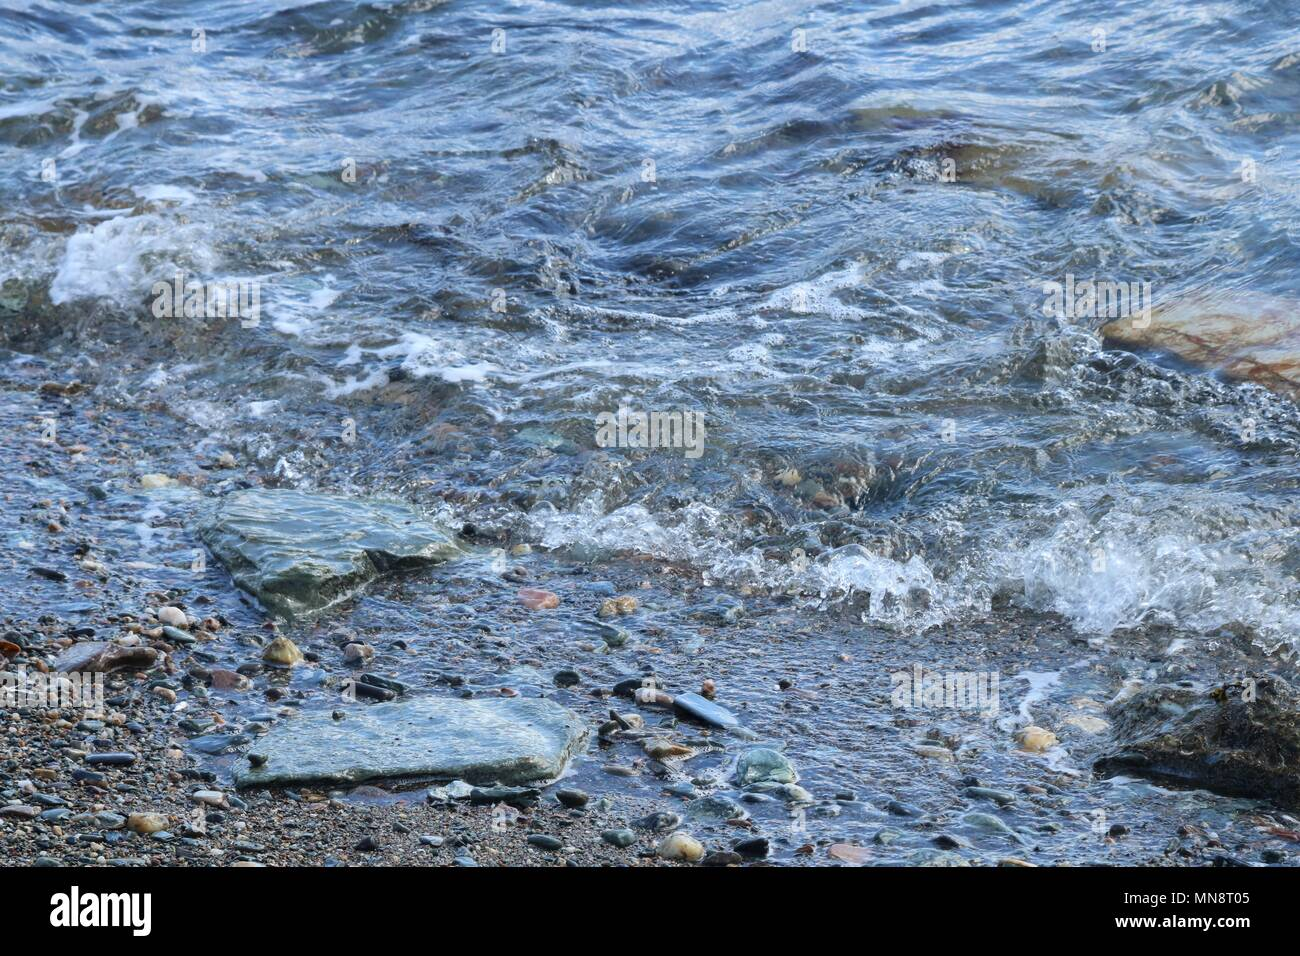 Gentle waves lapping against small rocks on a peddle beach on a sunny day. - Stock Image